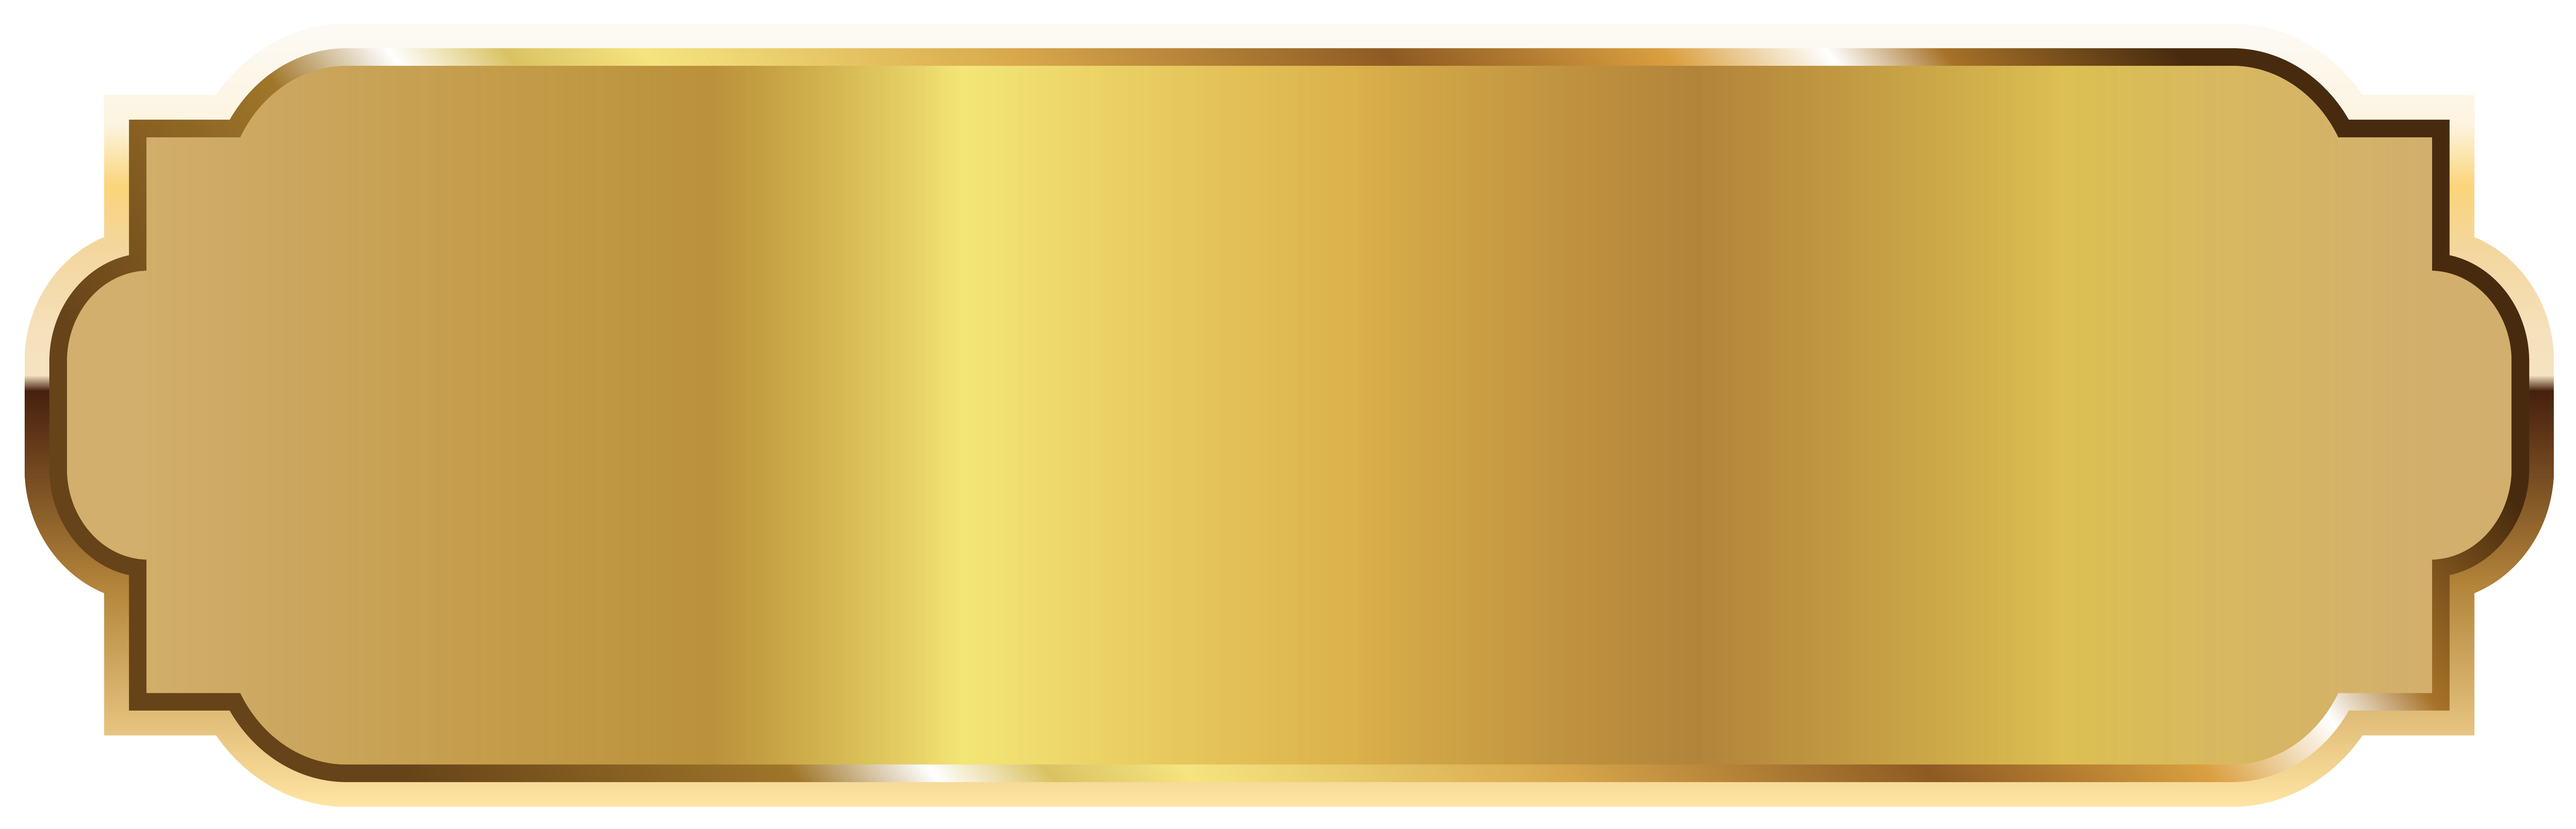 Gold Label Template PNG Picture | Backgrounds | Pinterest ...